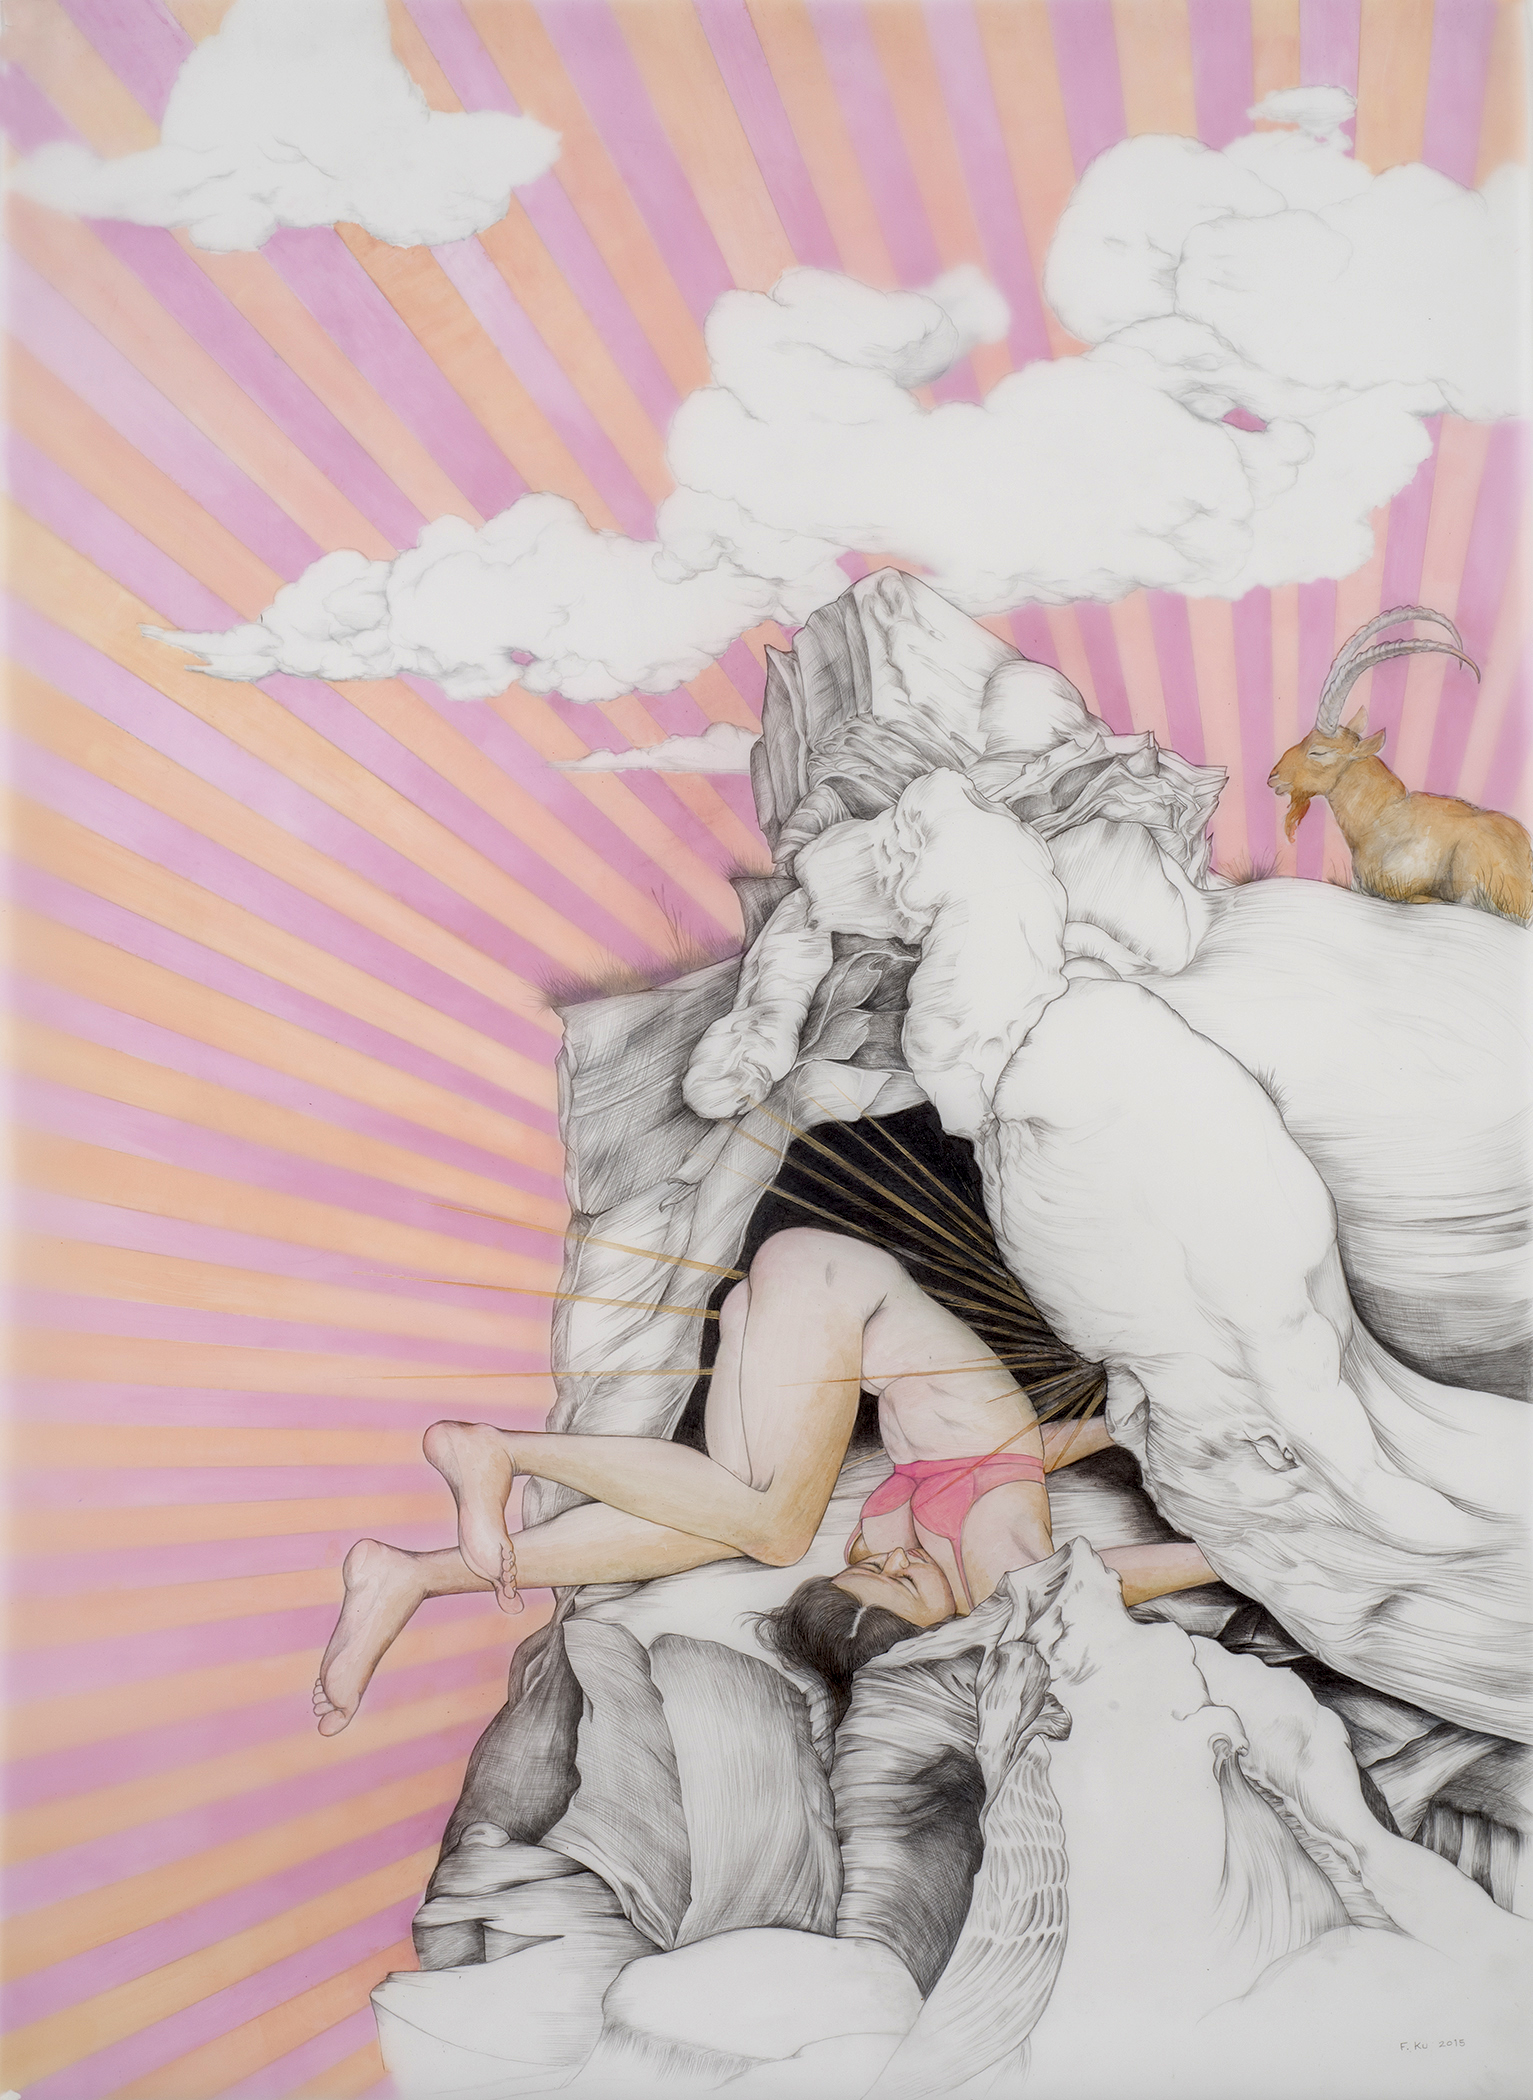 High Touch , 2015 Graphite and acrylic on layered sheets of polyester film 42 x 30 inches Photo: Bill Orcutt